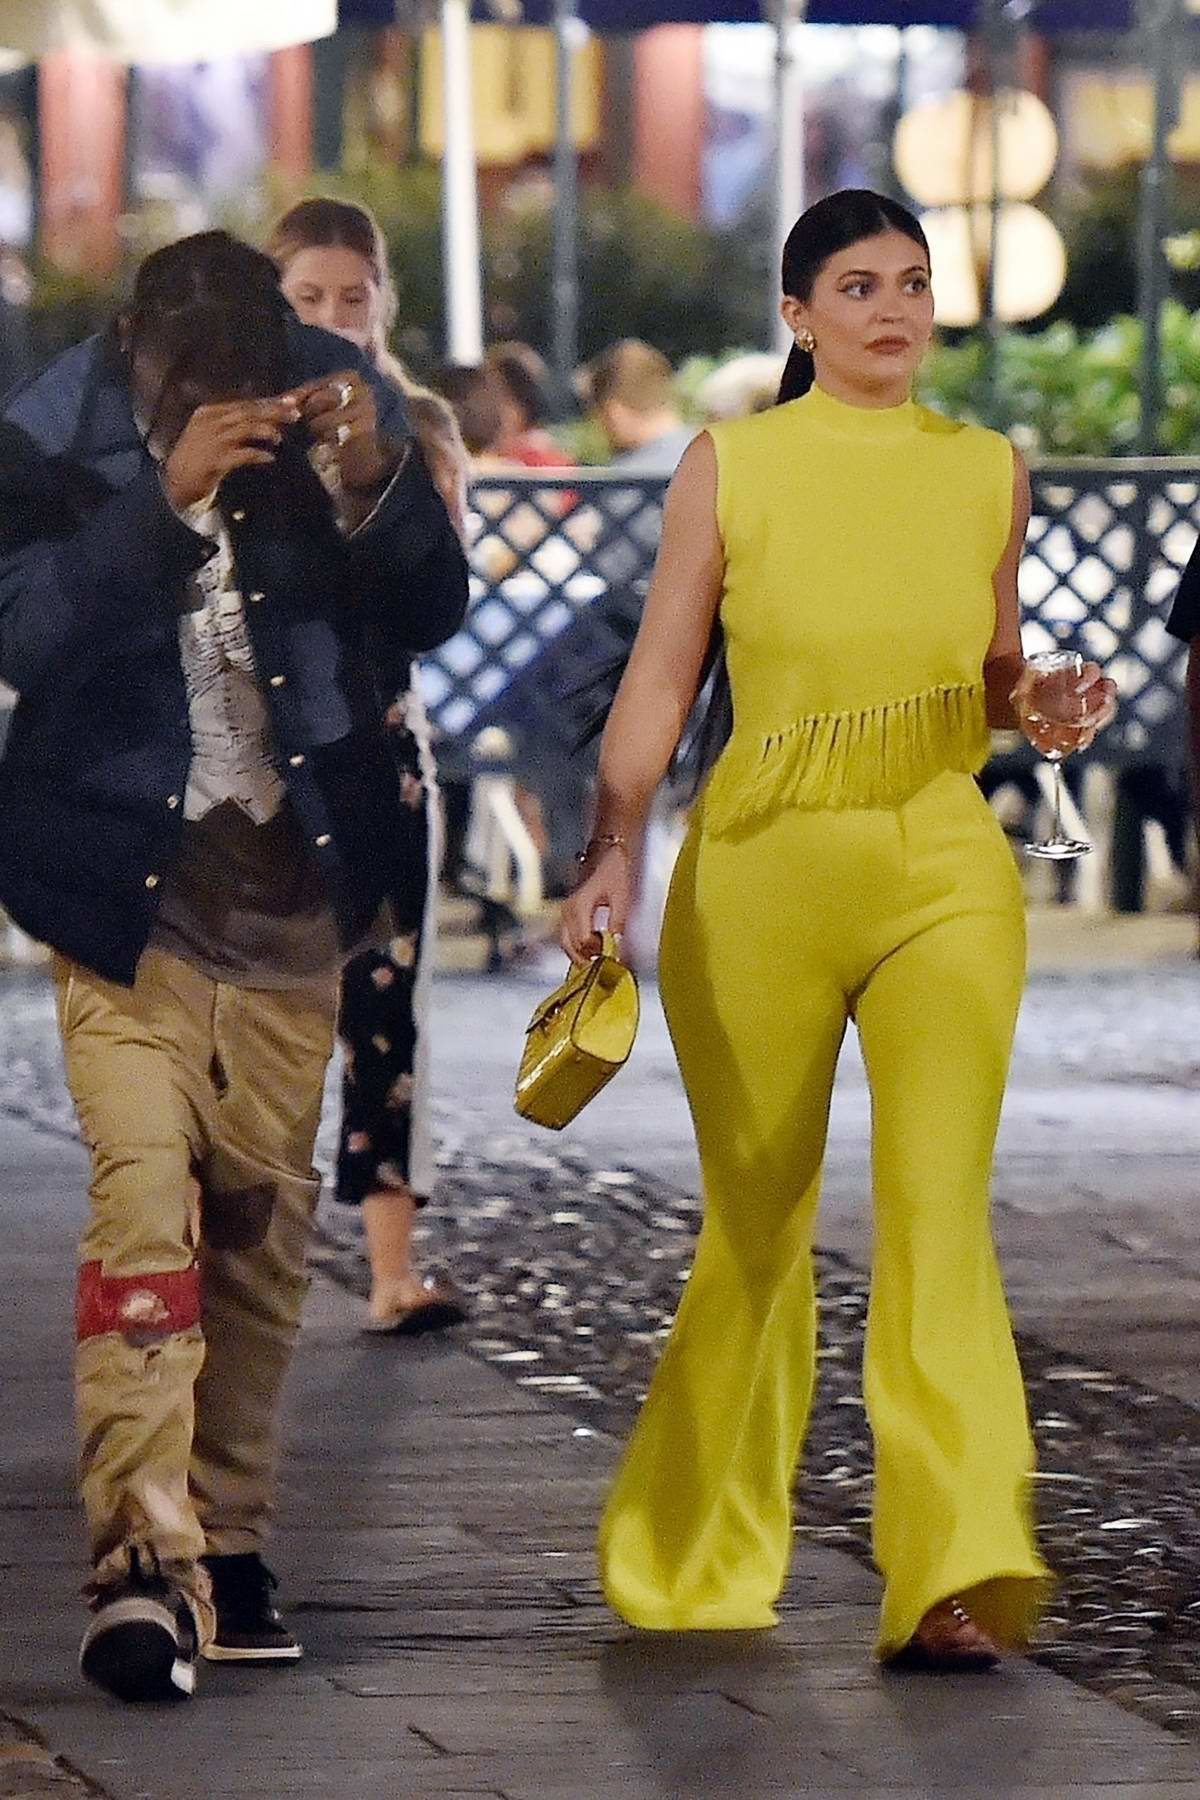 Kylie Jenner dazzles in a bright yellow ensemble while out for a date night with Travis Scott in Portofino, Italy